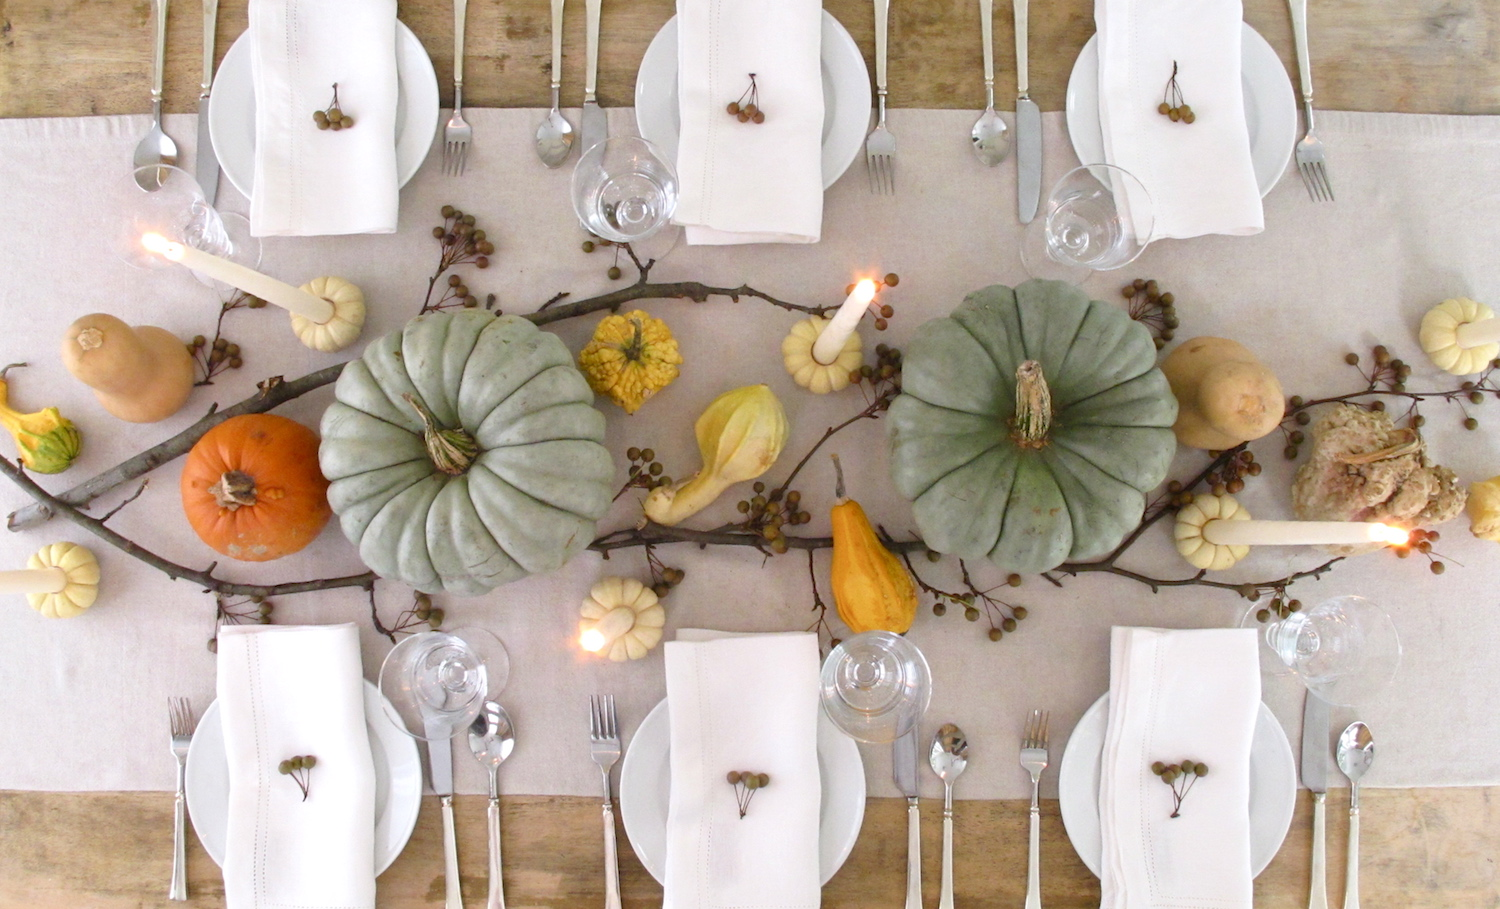 A Happy Thanksgiving Feast